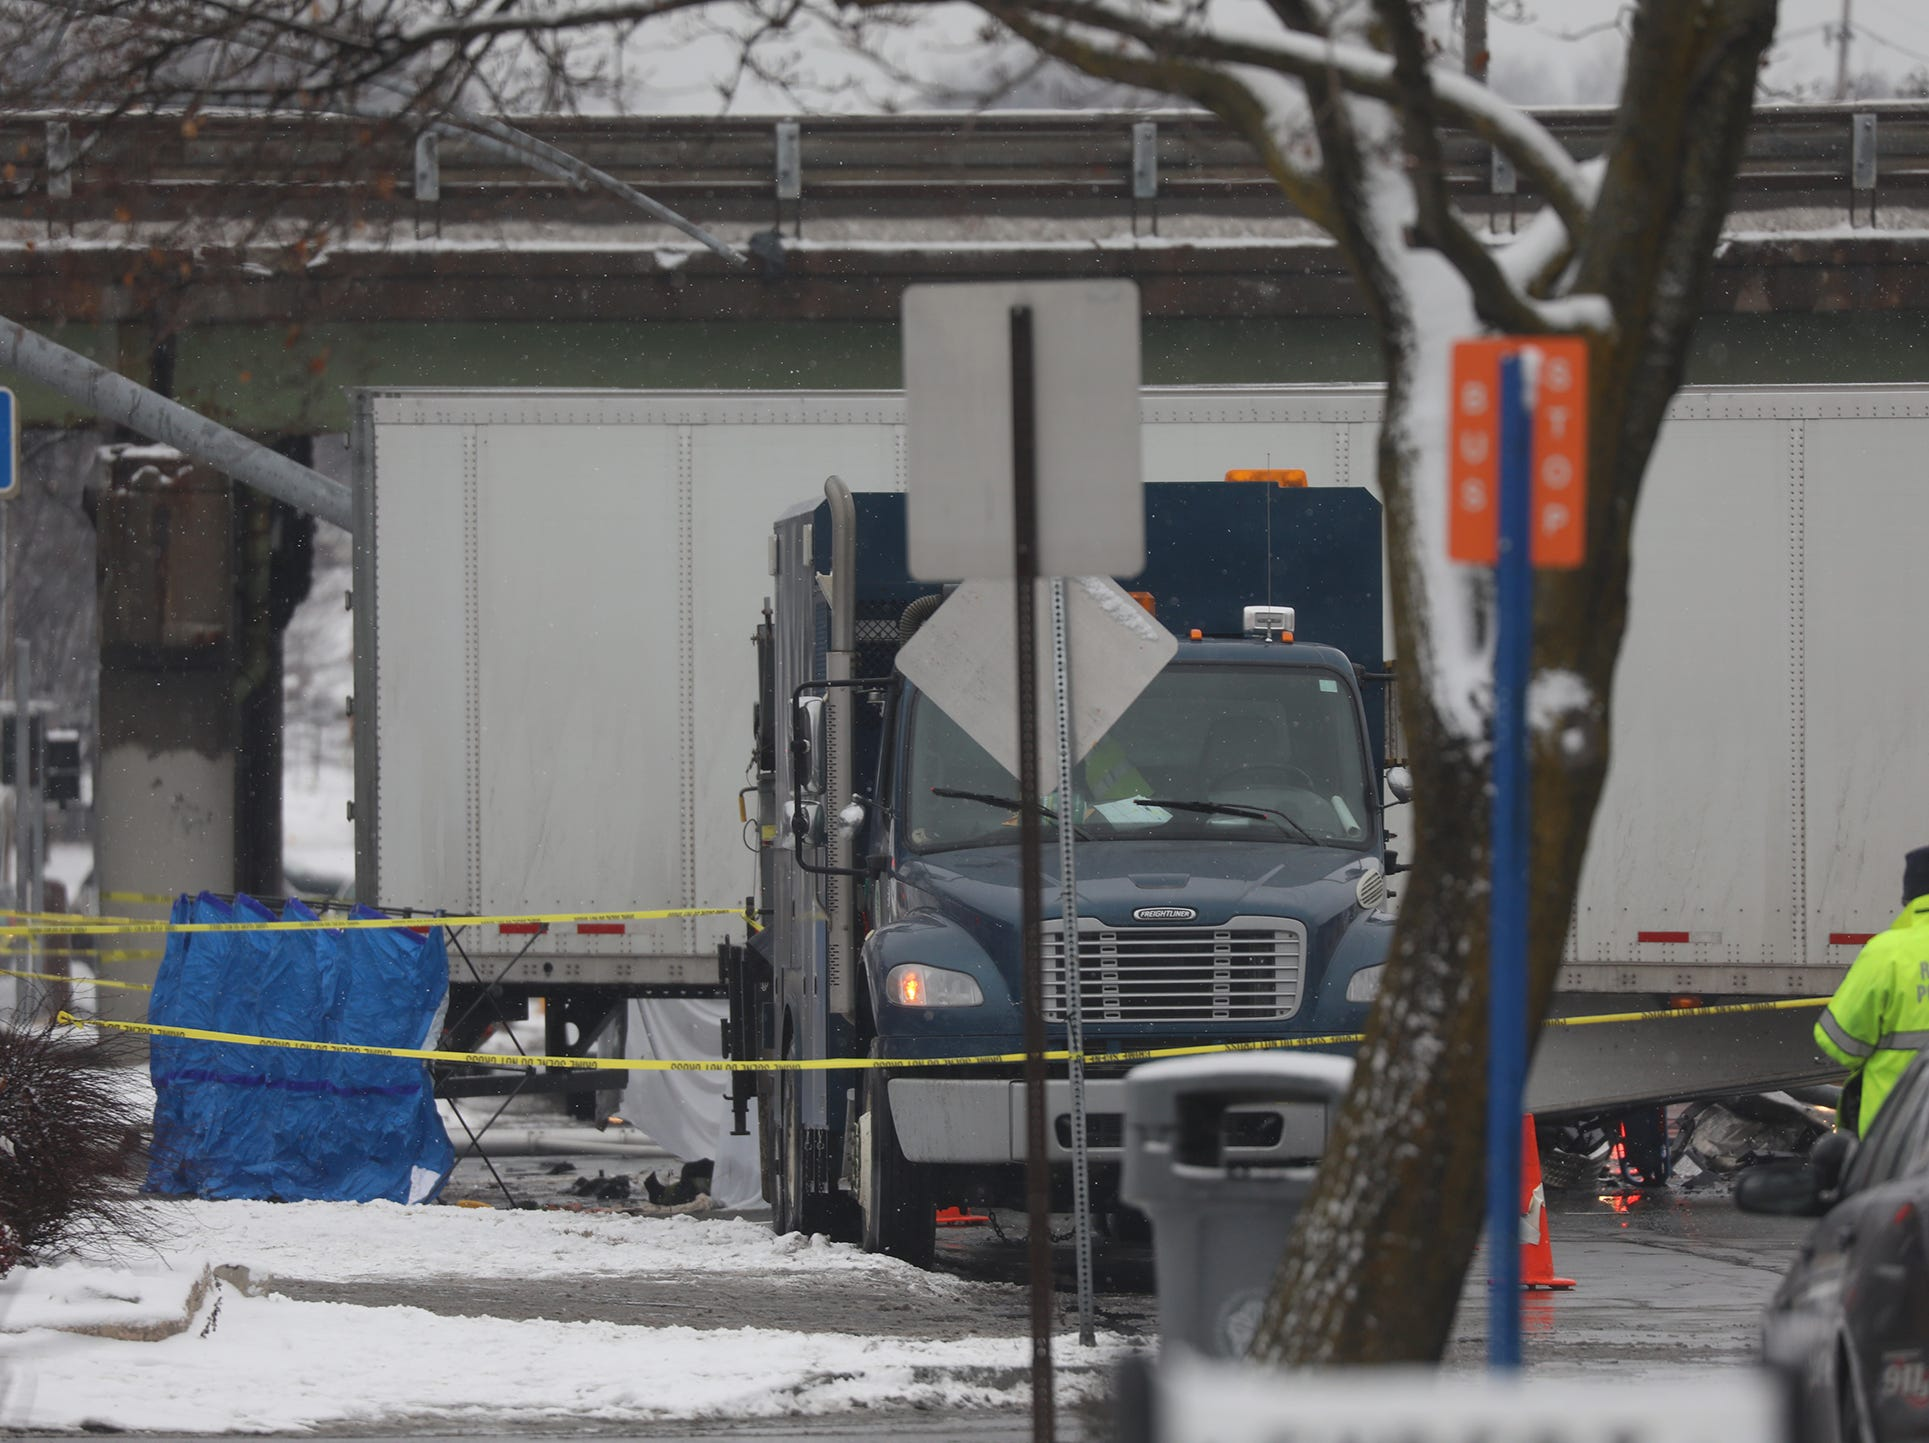 Two workers were working inside a sewer grate, one got away from the oncoming truck, the other was killed instantly.